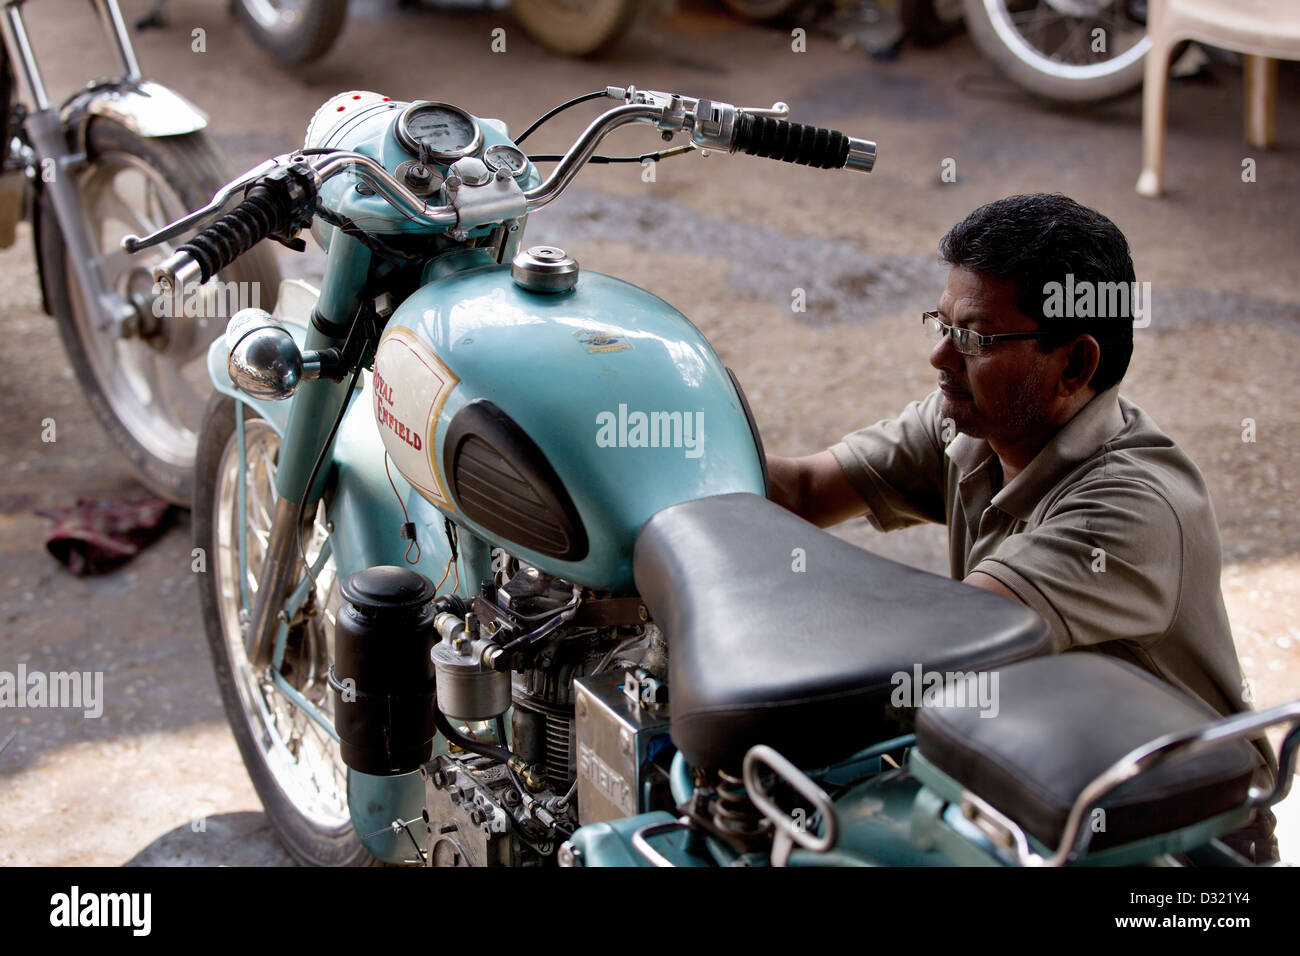 Royal Enfield mechanic Madhya Pradesh India - Stock Image